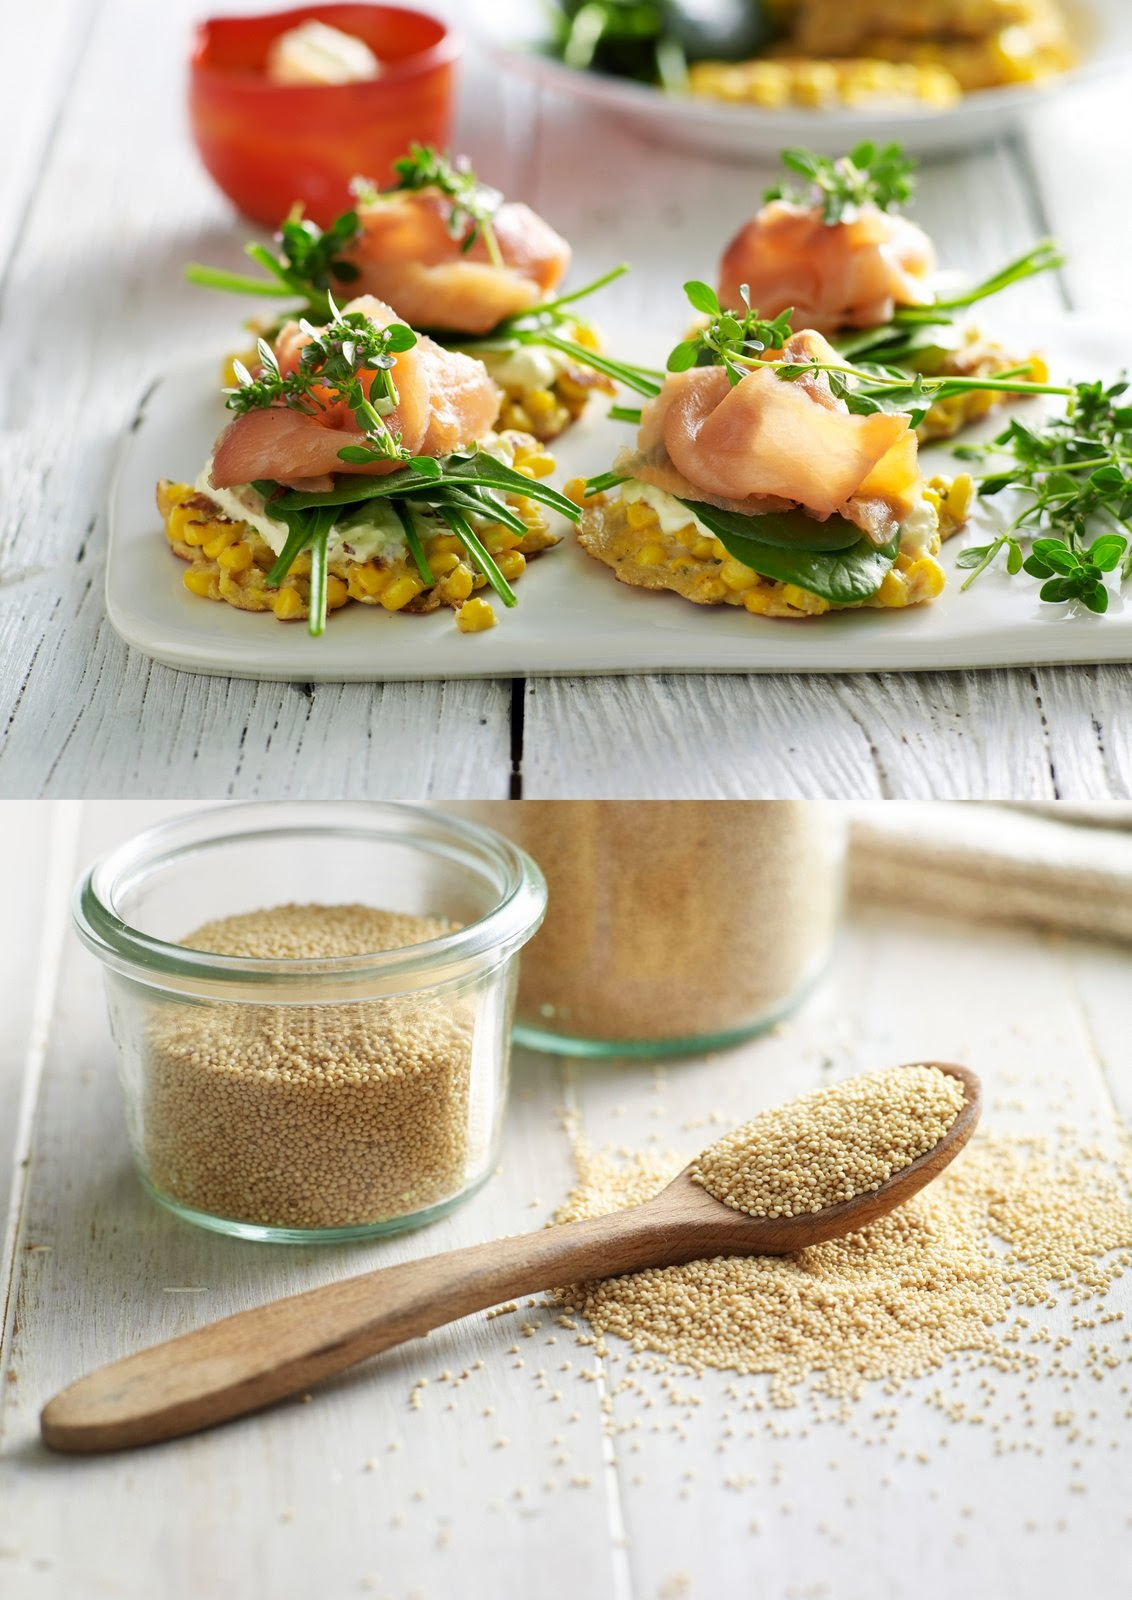 Ancient Grains Whole Food Recipes For The Modern Table